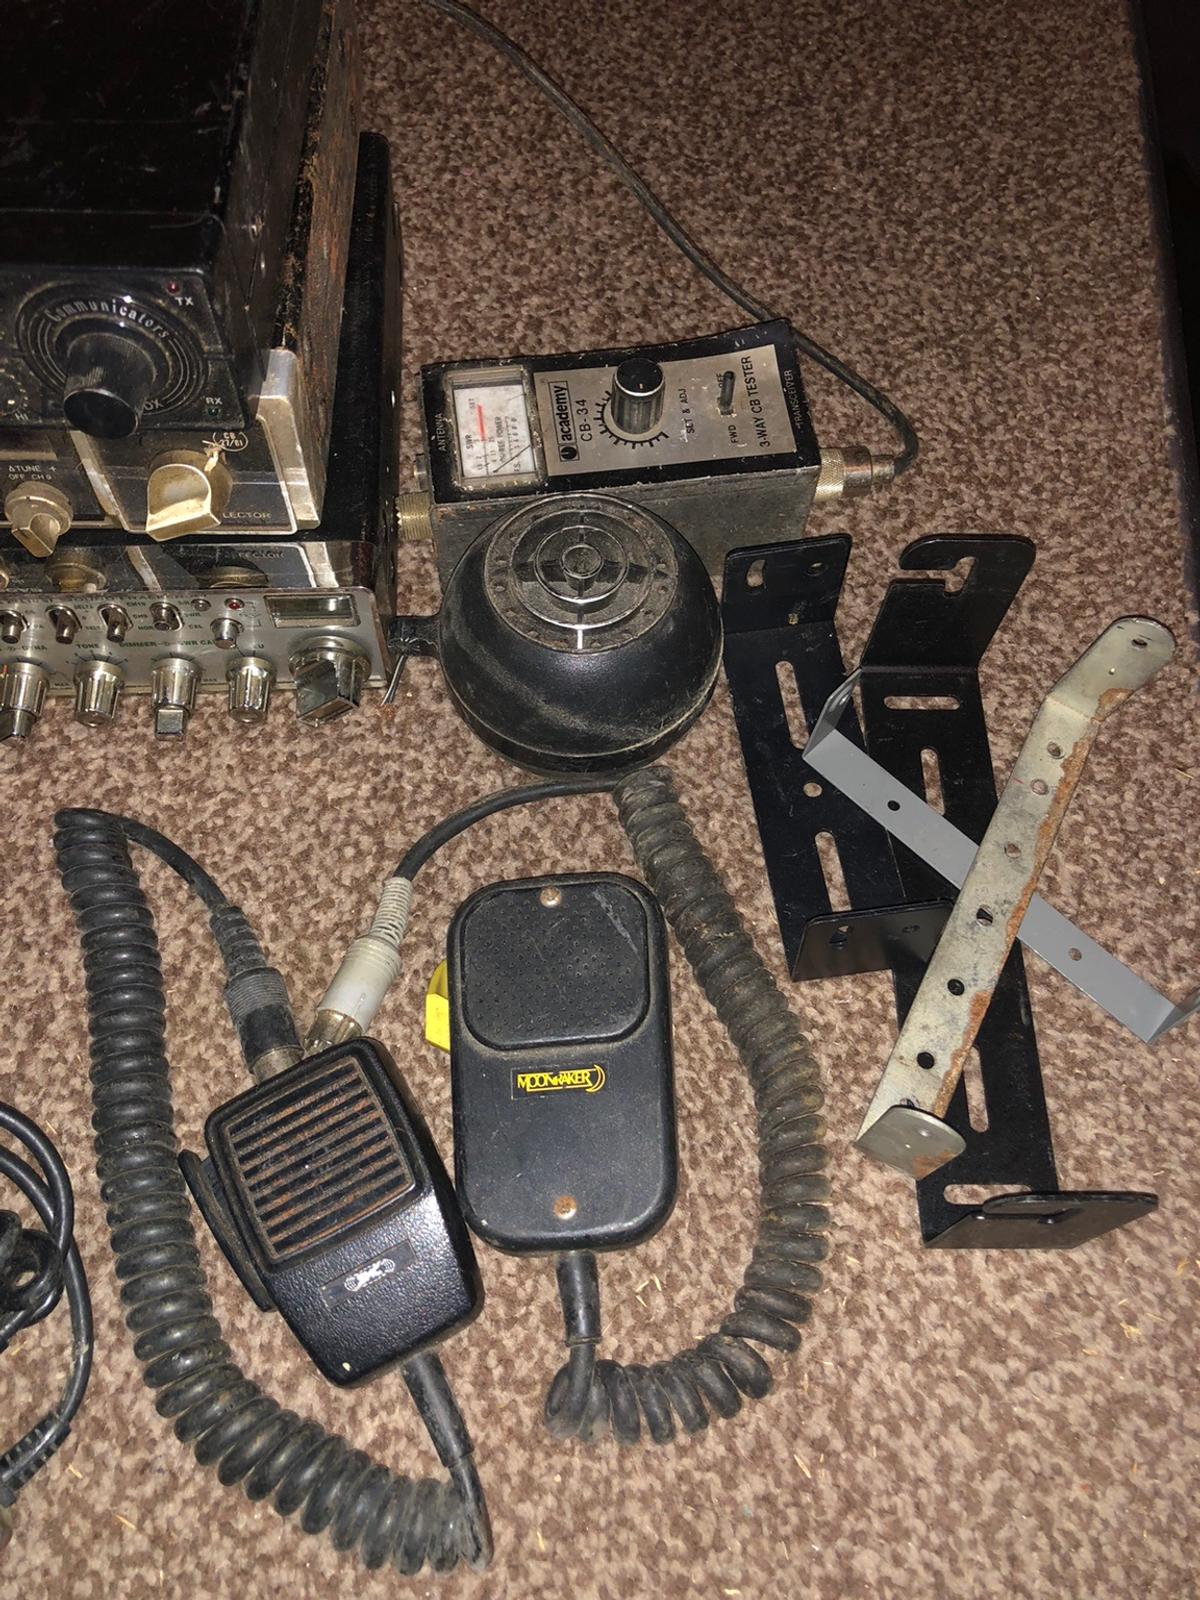 Mixture of cb stuff really don't know on a price definitely want to sell as job lot so give me your offers many thanks  Any questions please don't hesitate to ask me  Cash on collection Collection abbeywood